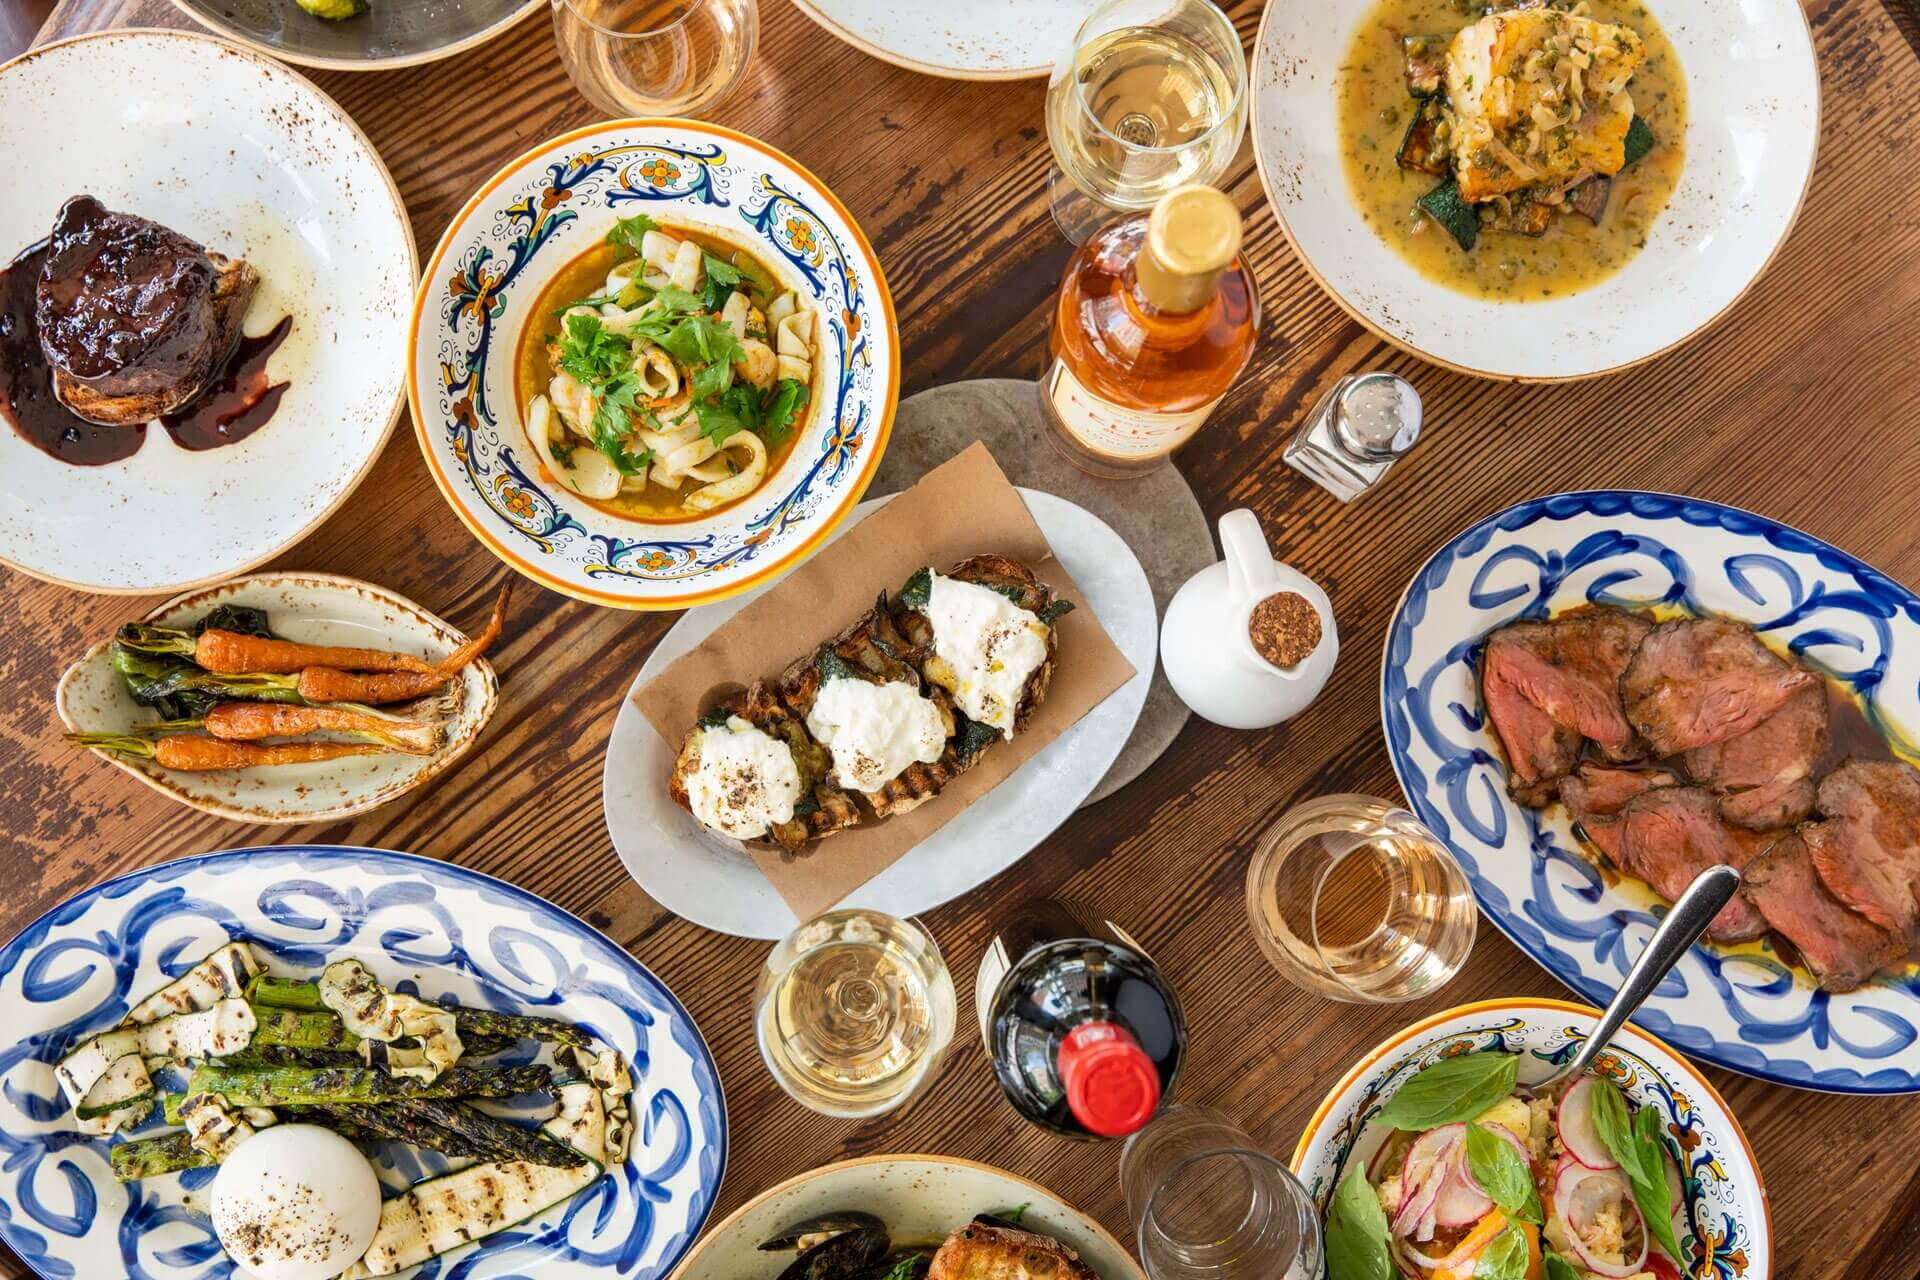 Felice: Italian Restaurants in New York City